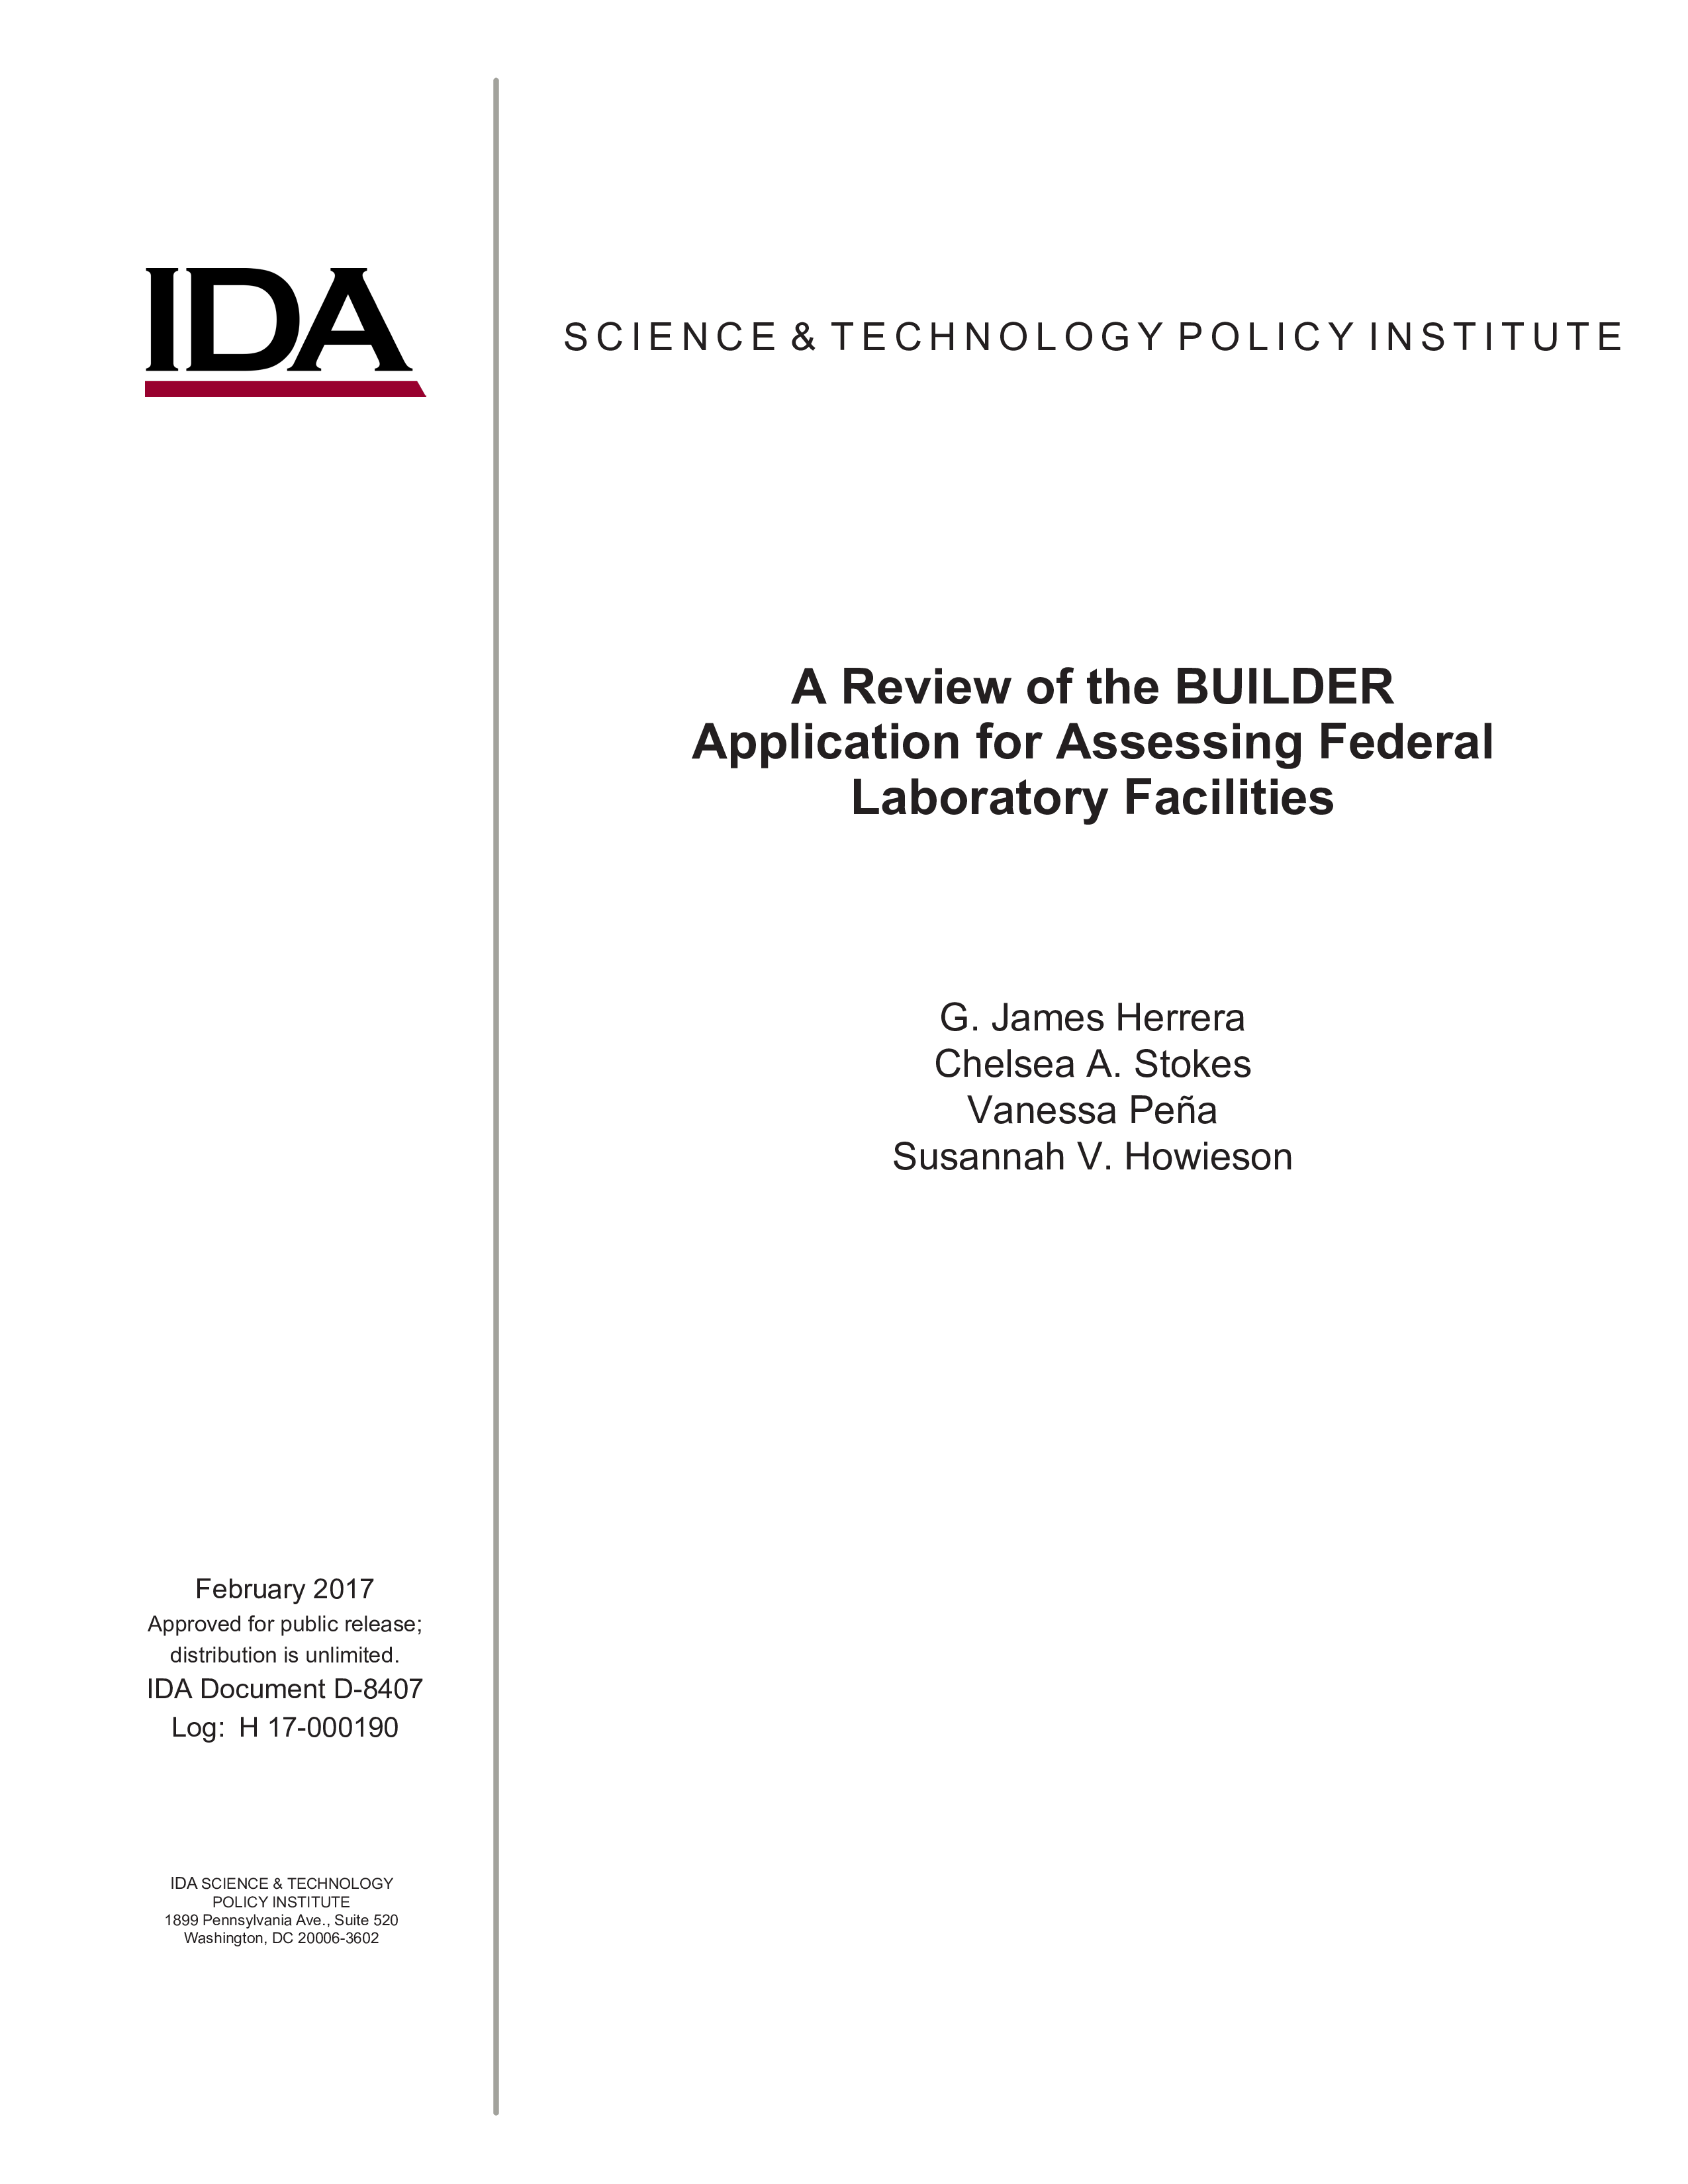 A Review of the BUILDER Application for Assessing Federal Laboratory Facilities